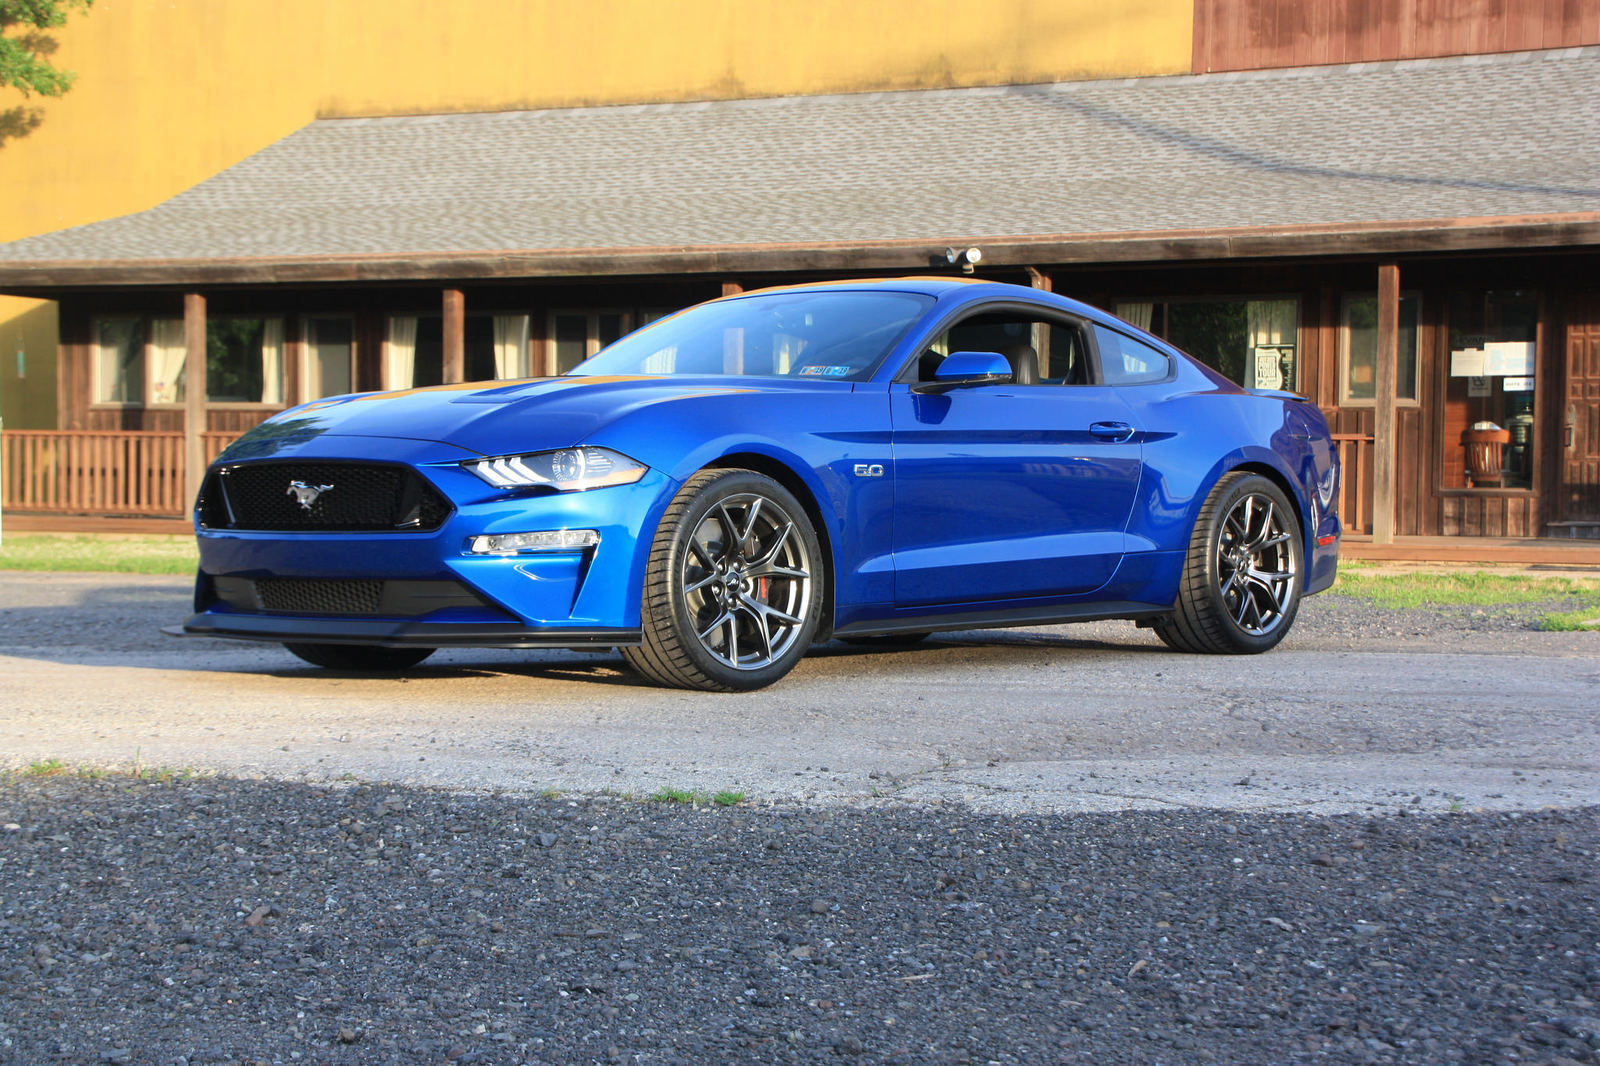 Pp2 real life pictures page 41 2015 s550 mustang forum gt